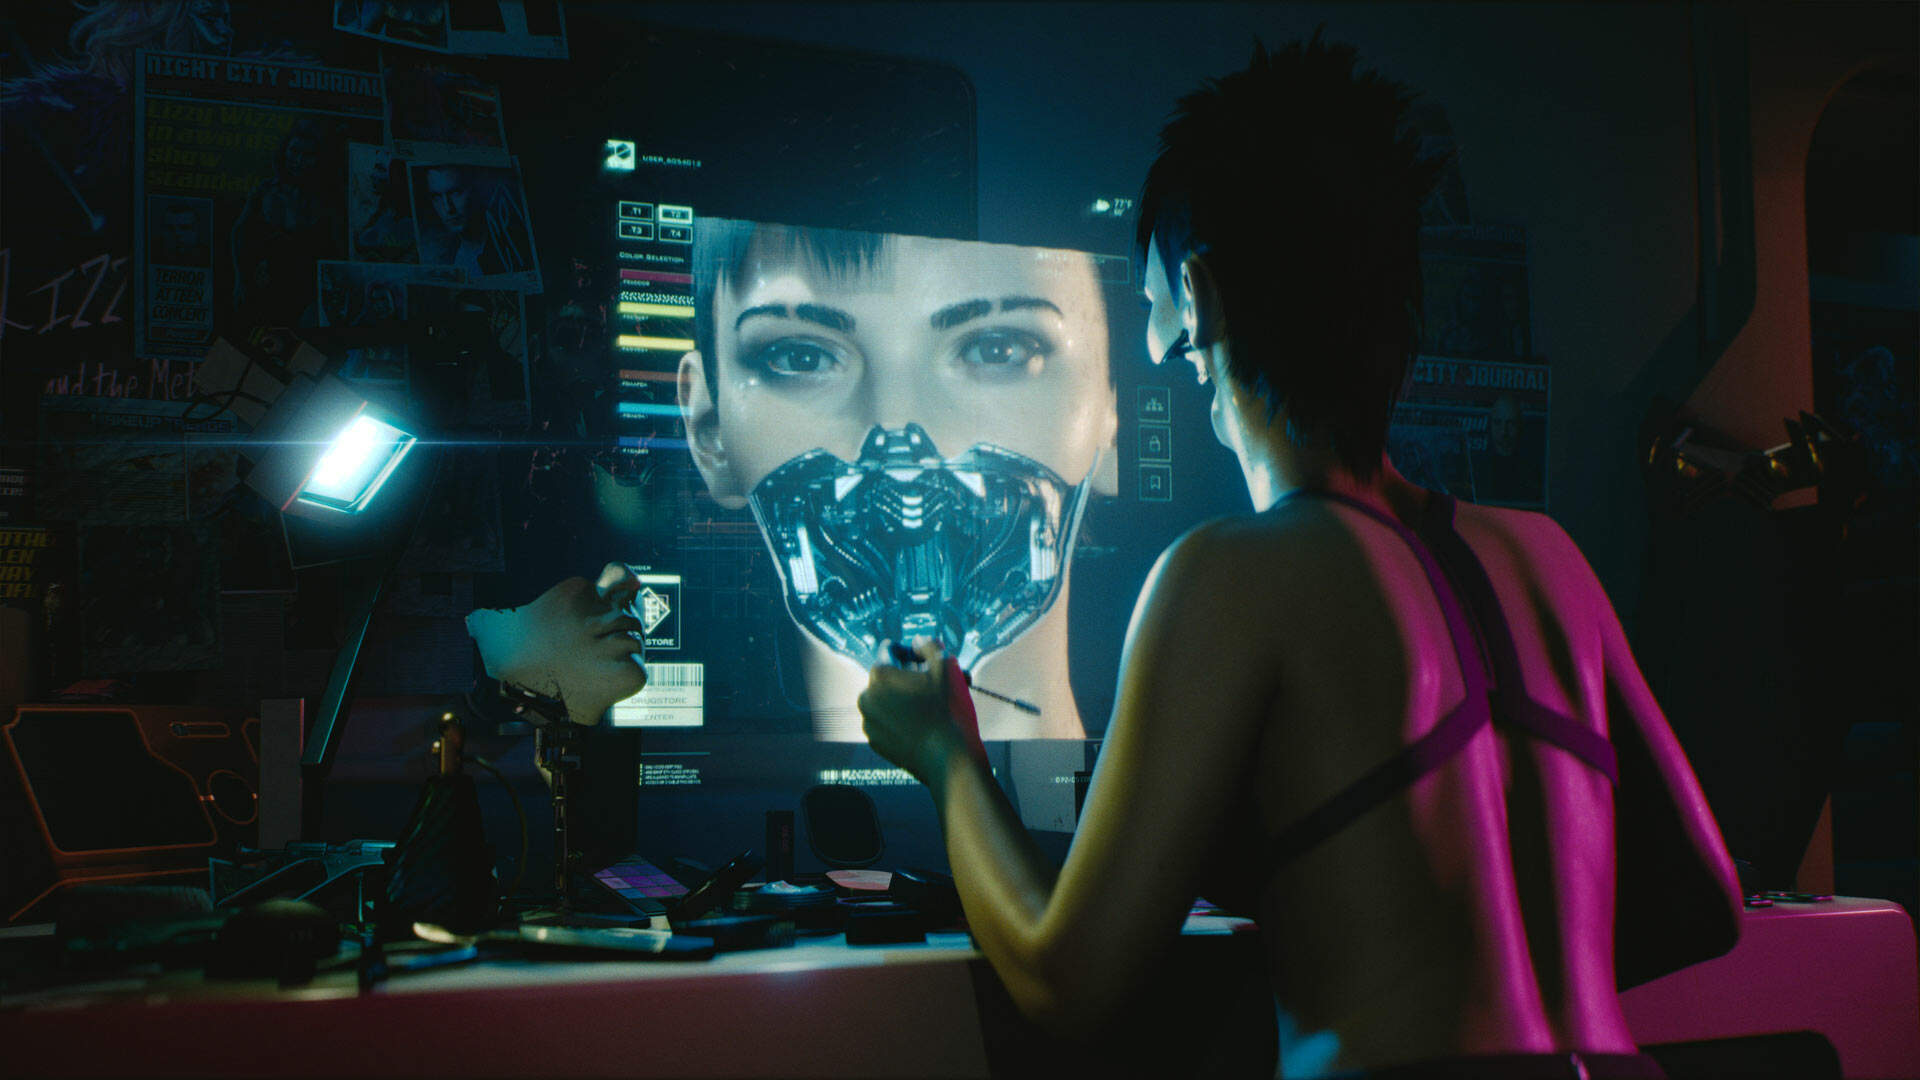 Cyberpunk 2077 Rated M With Emphasis on Gore and Sexual Content